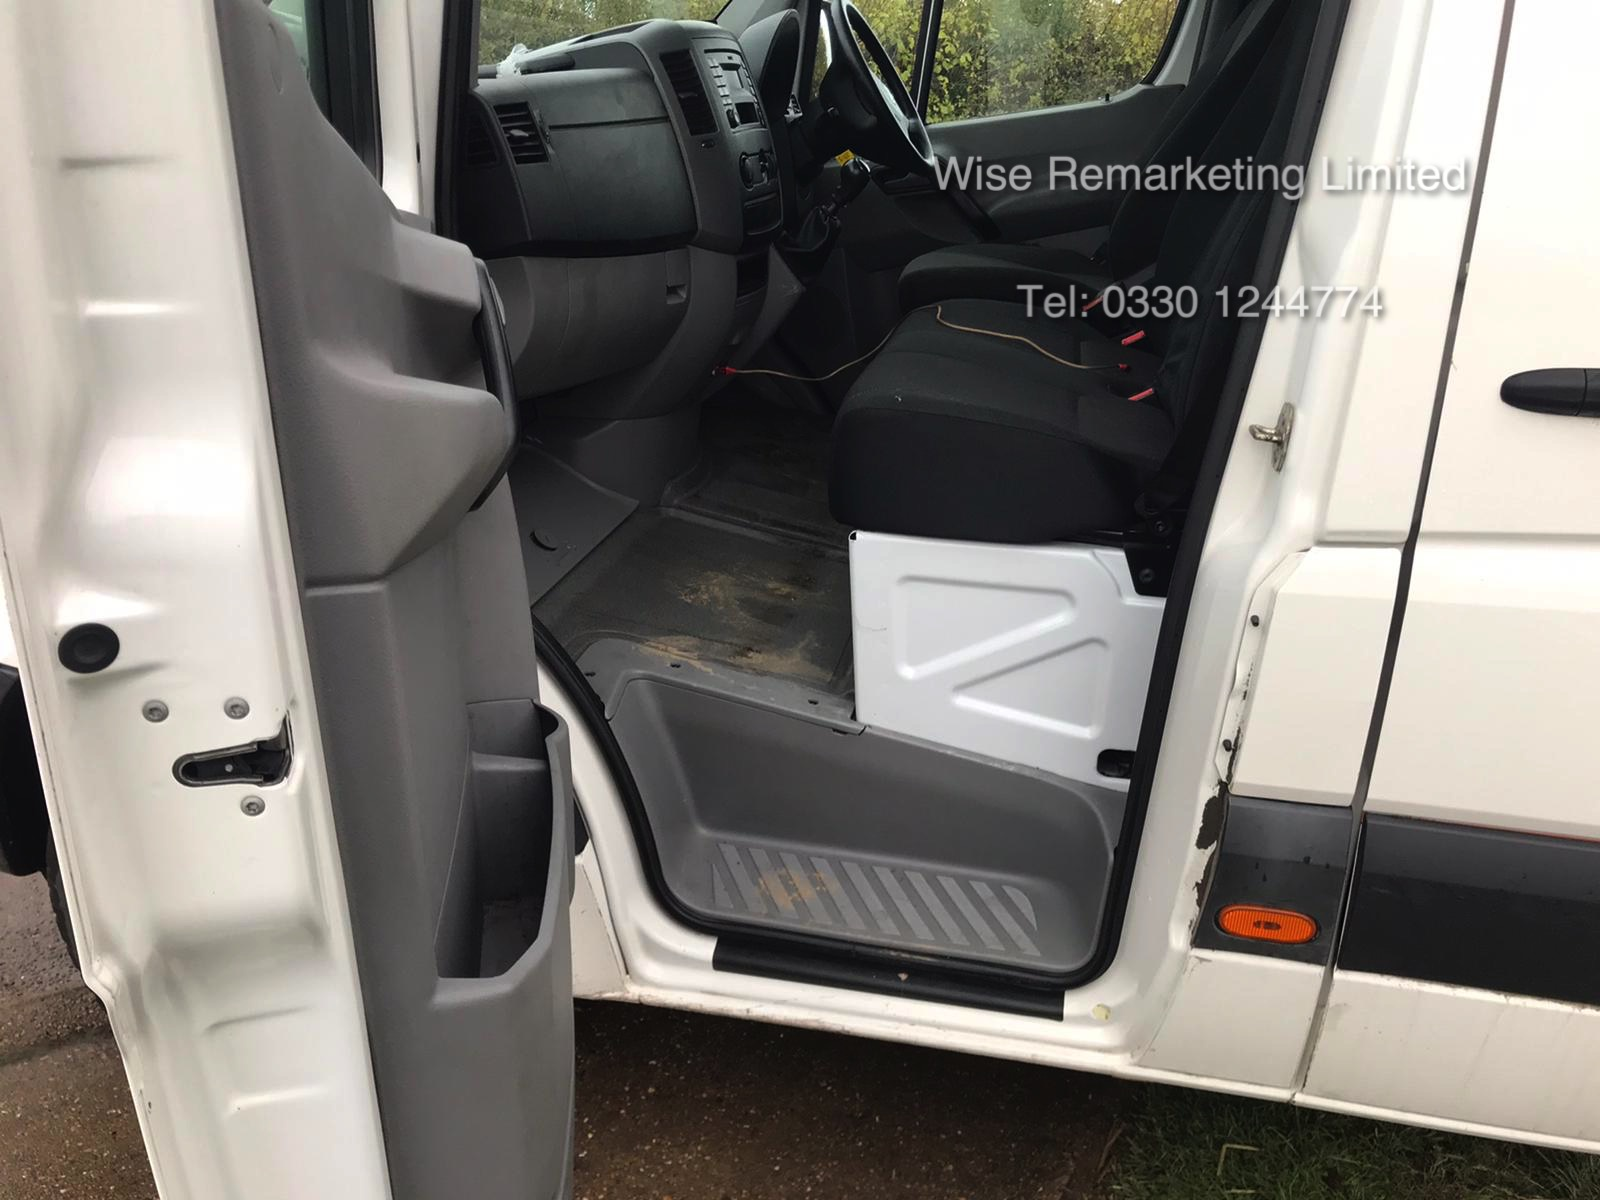 Volkswagen Crafter CR35 Startline 2.0l TDi - LWB - 2016 Model -1 Keeper From New - Service History - Image 9 of 15